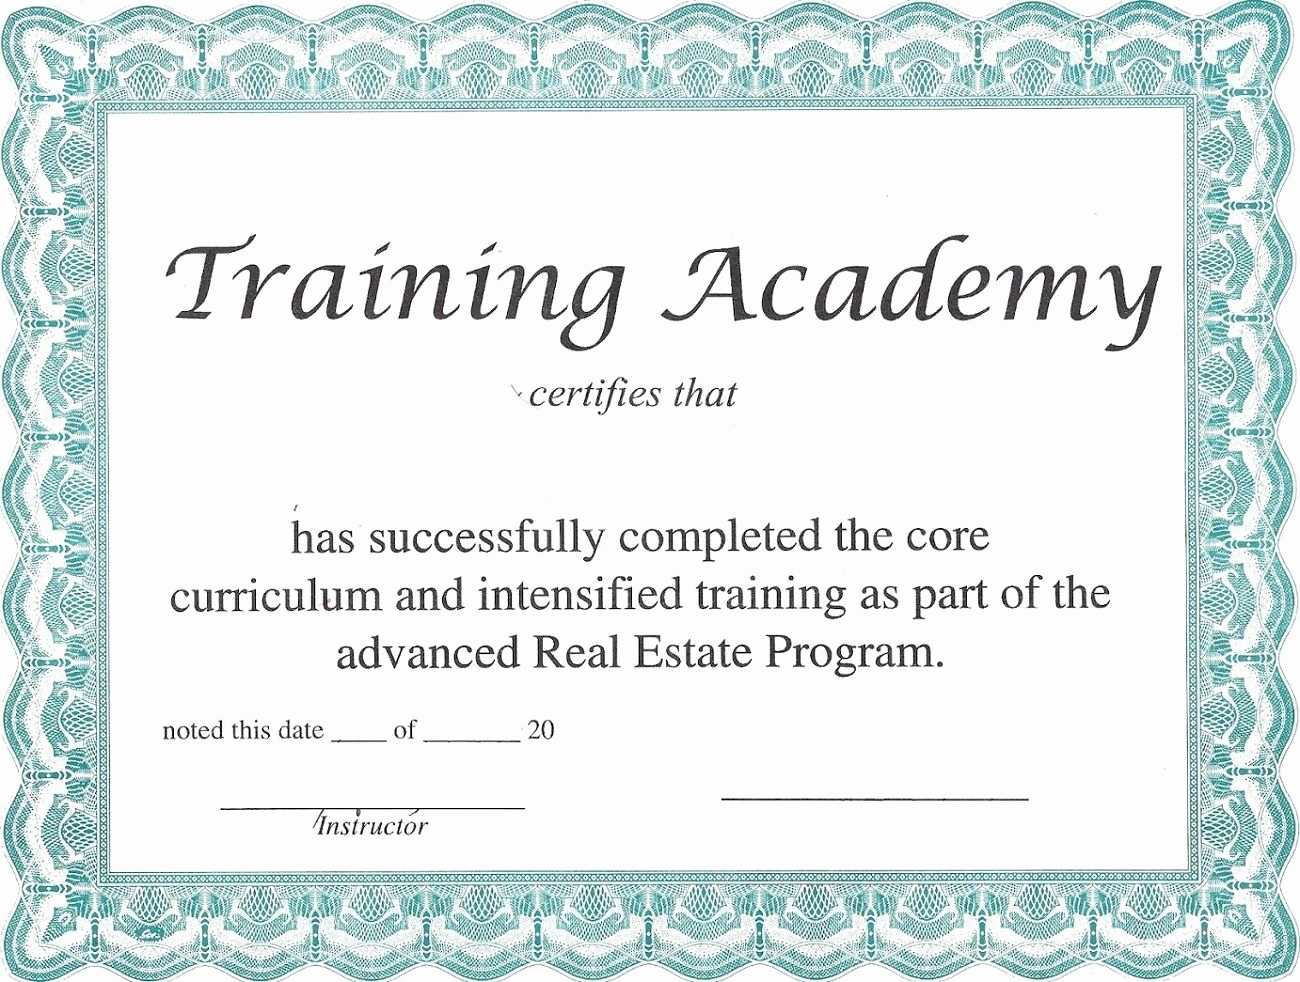 Training Certificate Template Doc Fresh Blank Certificate Templates to Print